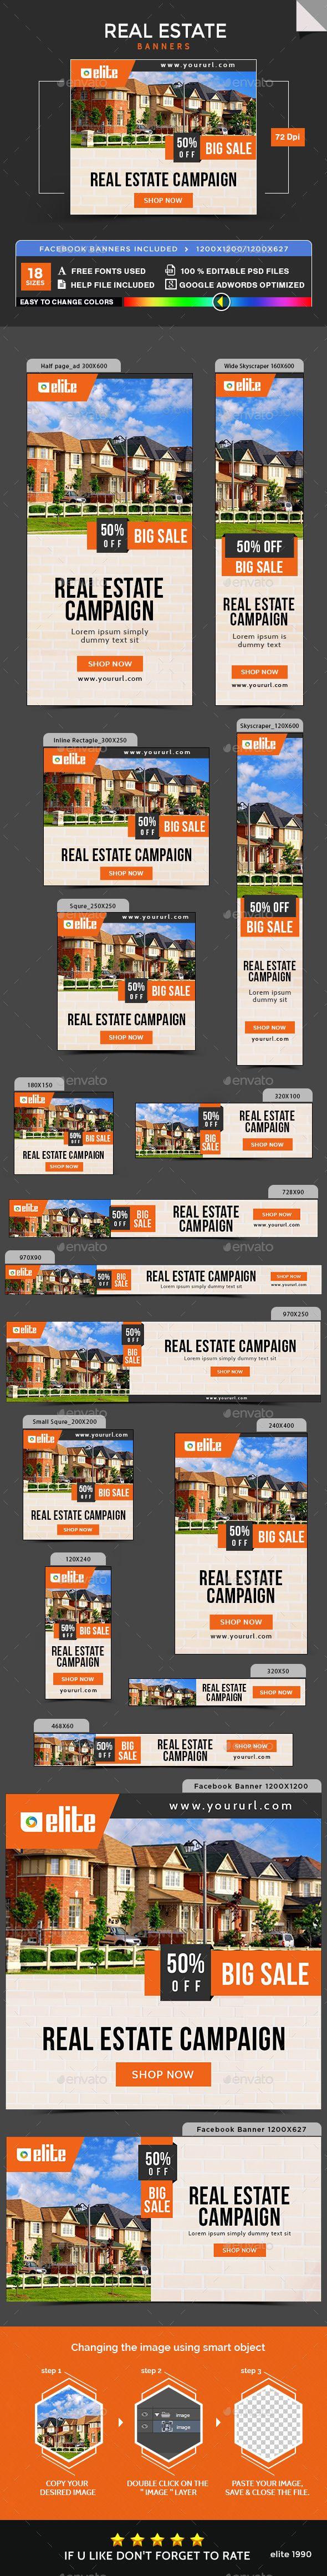 Advertising-Infographics-Real-Estate-Banners Advertising Infographics : Real Estate Banners